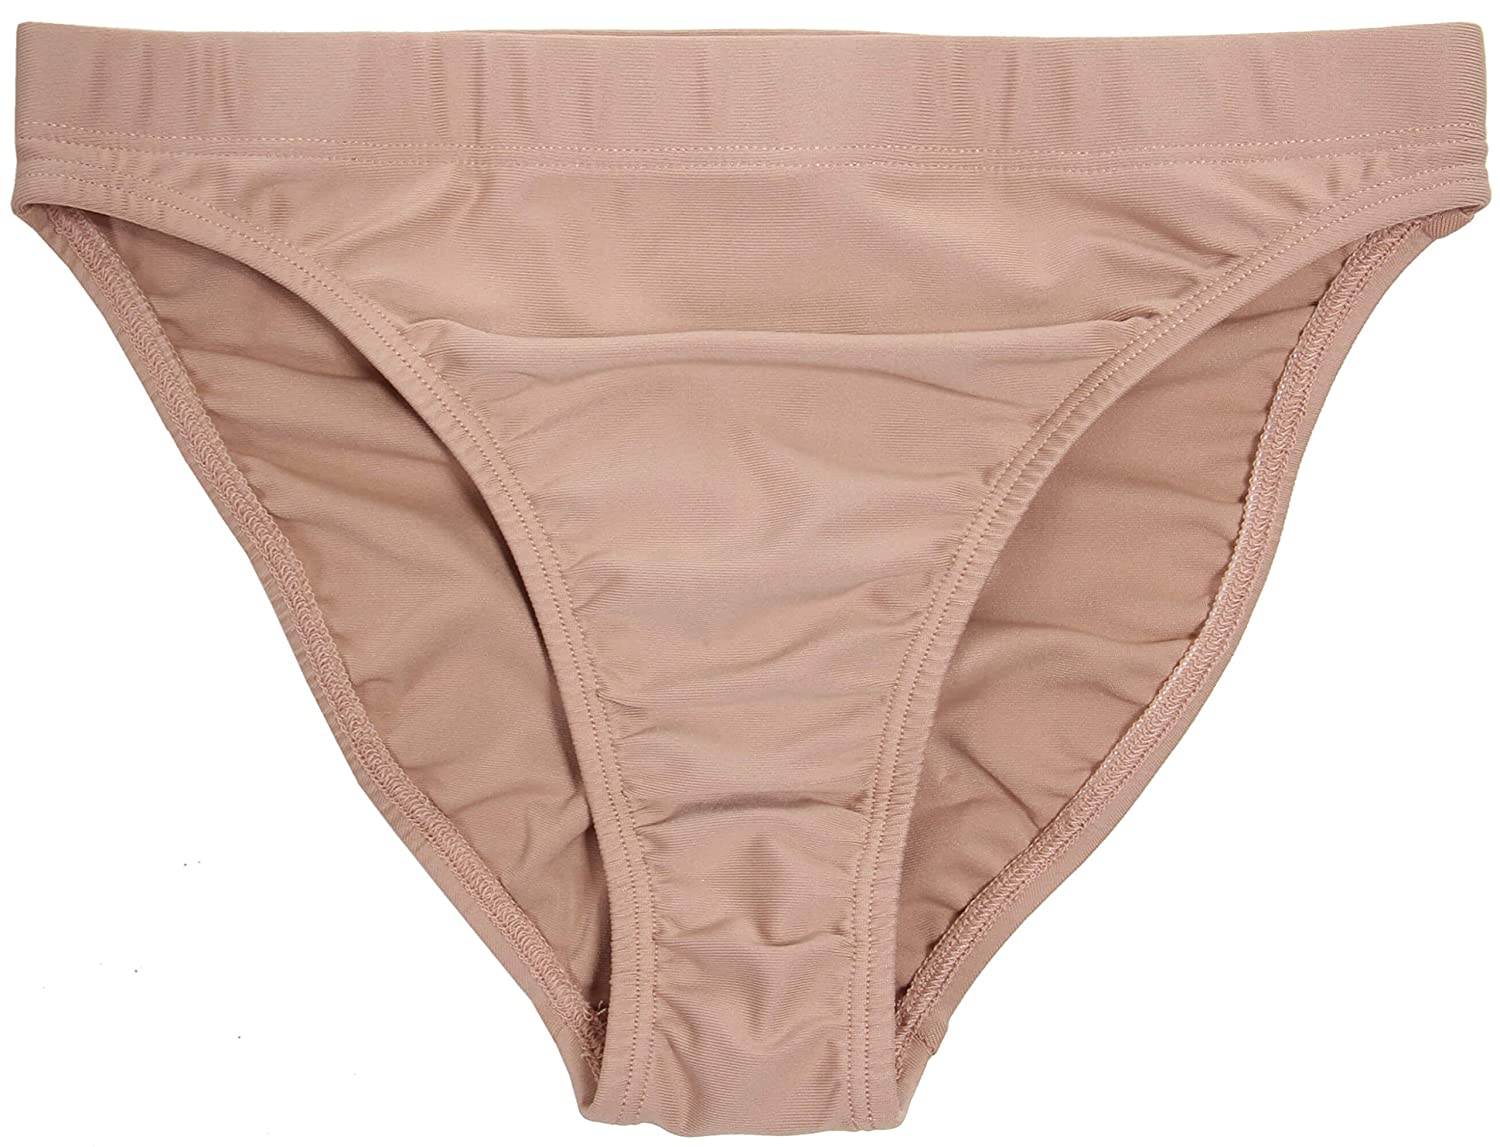 Girls & Women 's Dry Flex Briefs – ベージュorブラック B010989ITG ベージュ X-Small